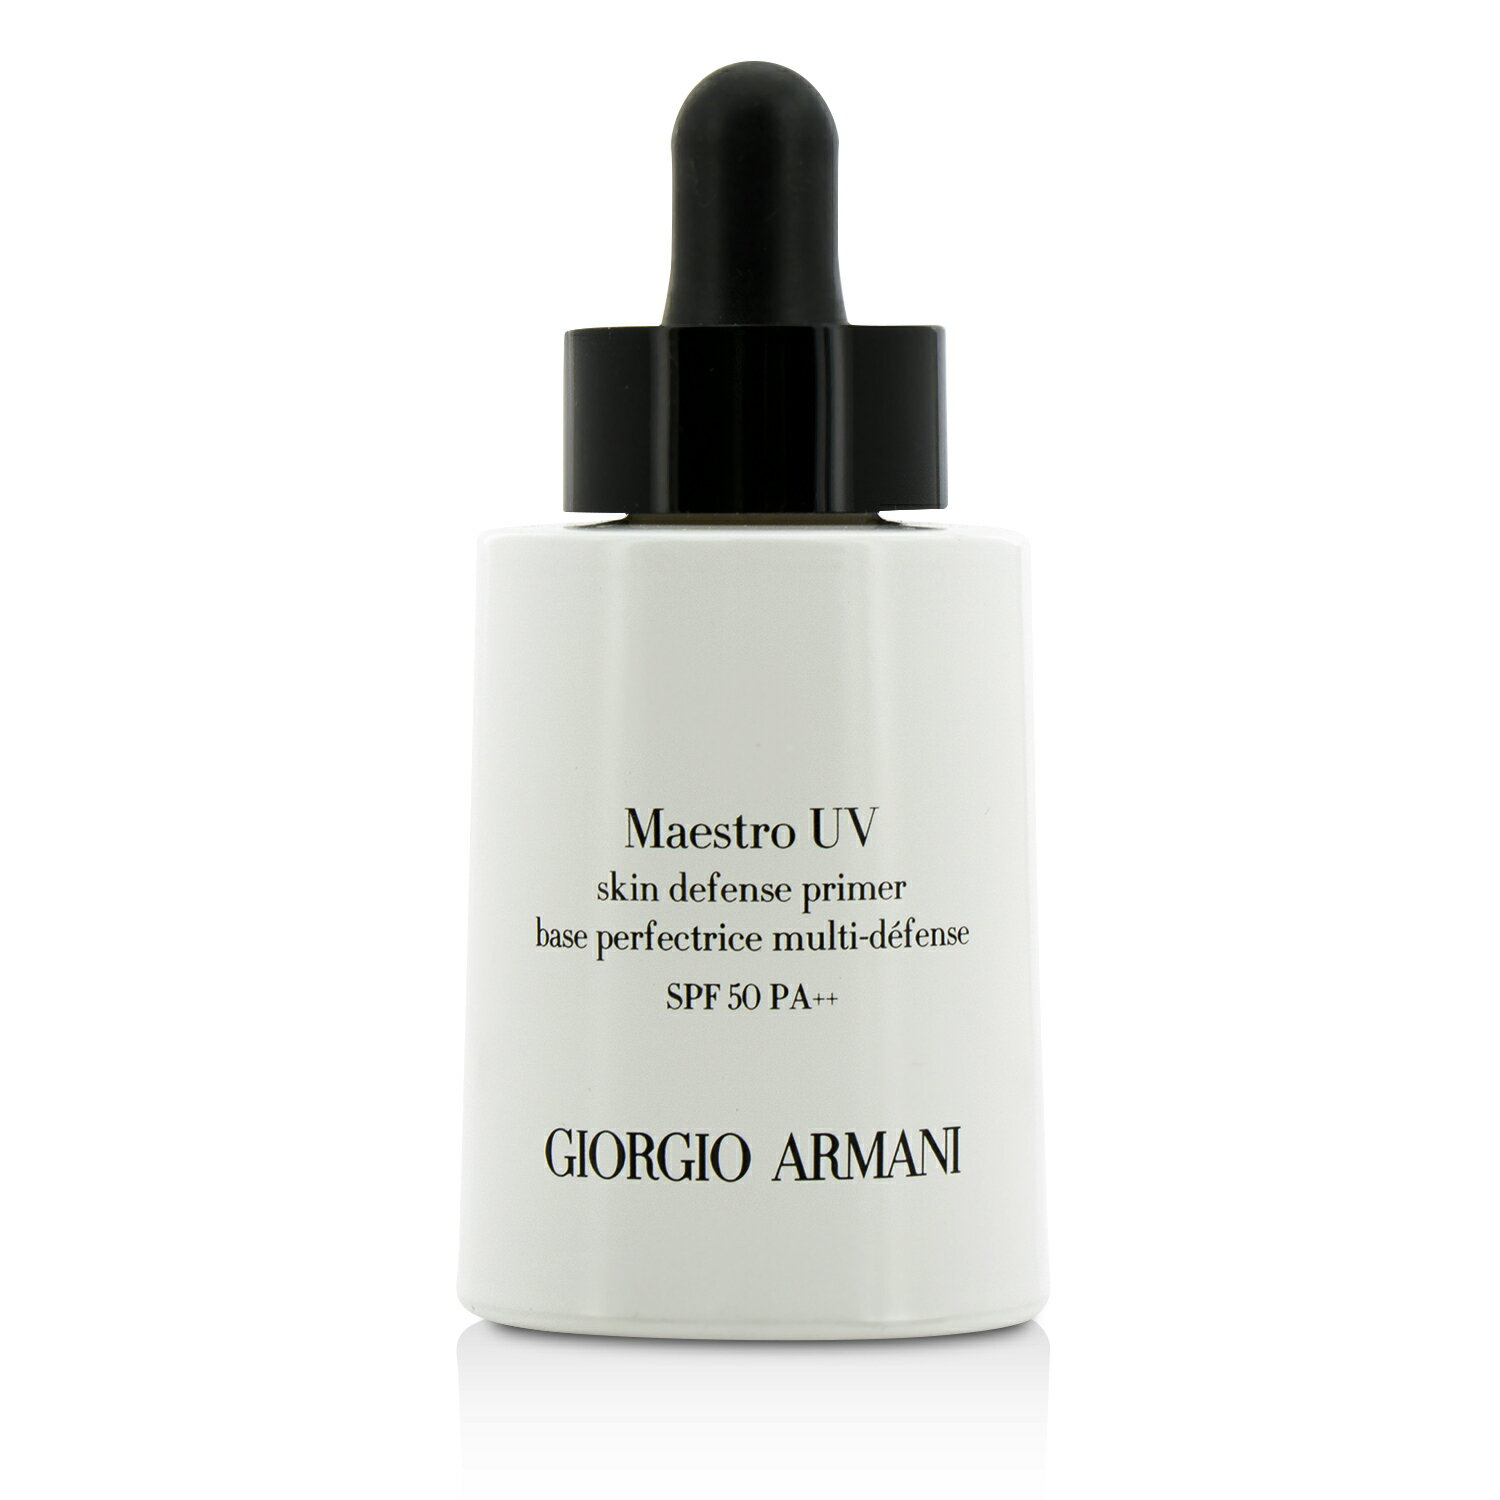 亞曼尼 Giorgio Armani - 妝前乳 Maestro UV Skin Defense Primer SPF 50